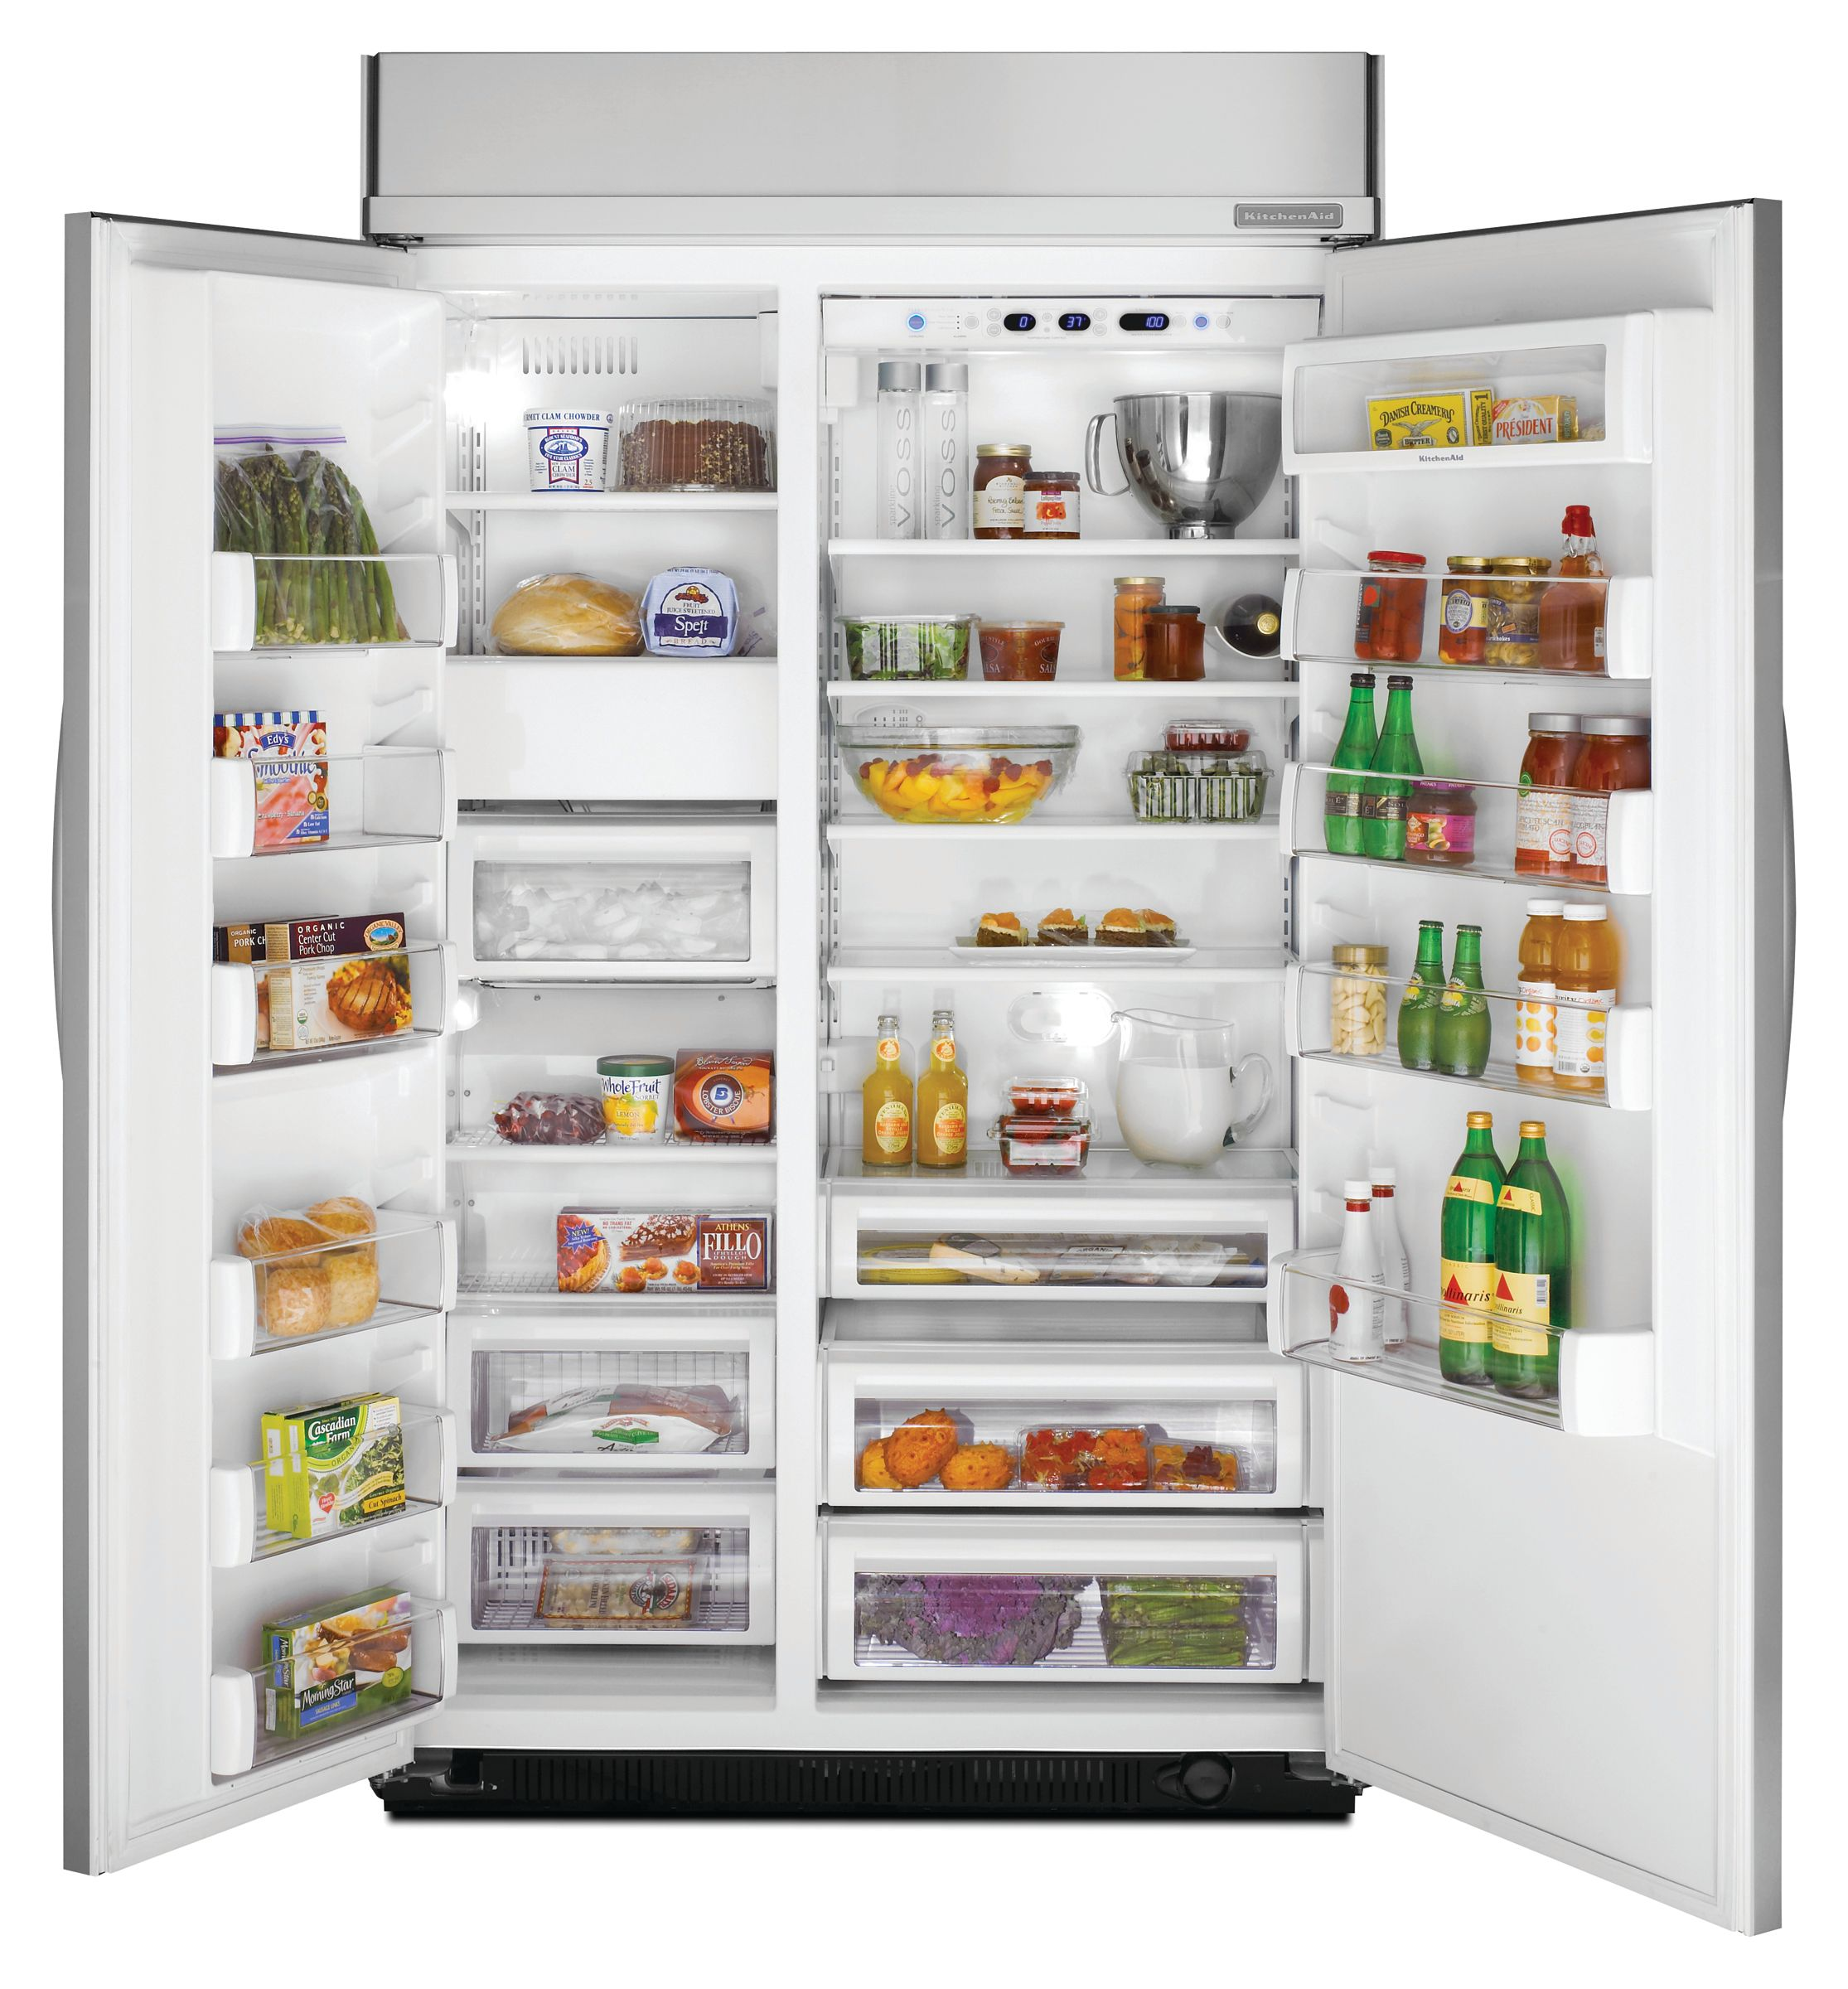 KitchenAid 29.8 cu. ft. Non-Dispensing Built-In  Side-By-Side Refrigerator